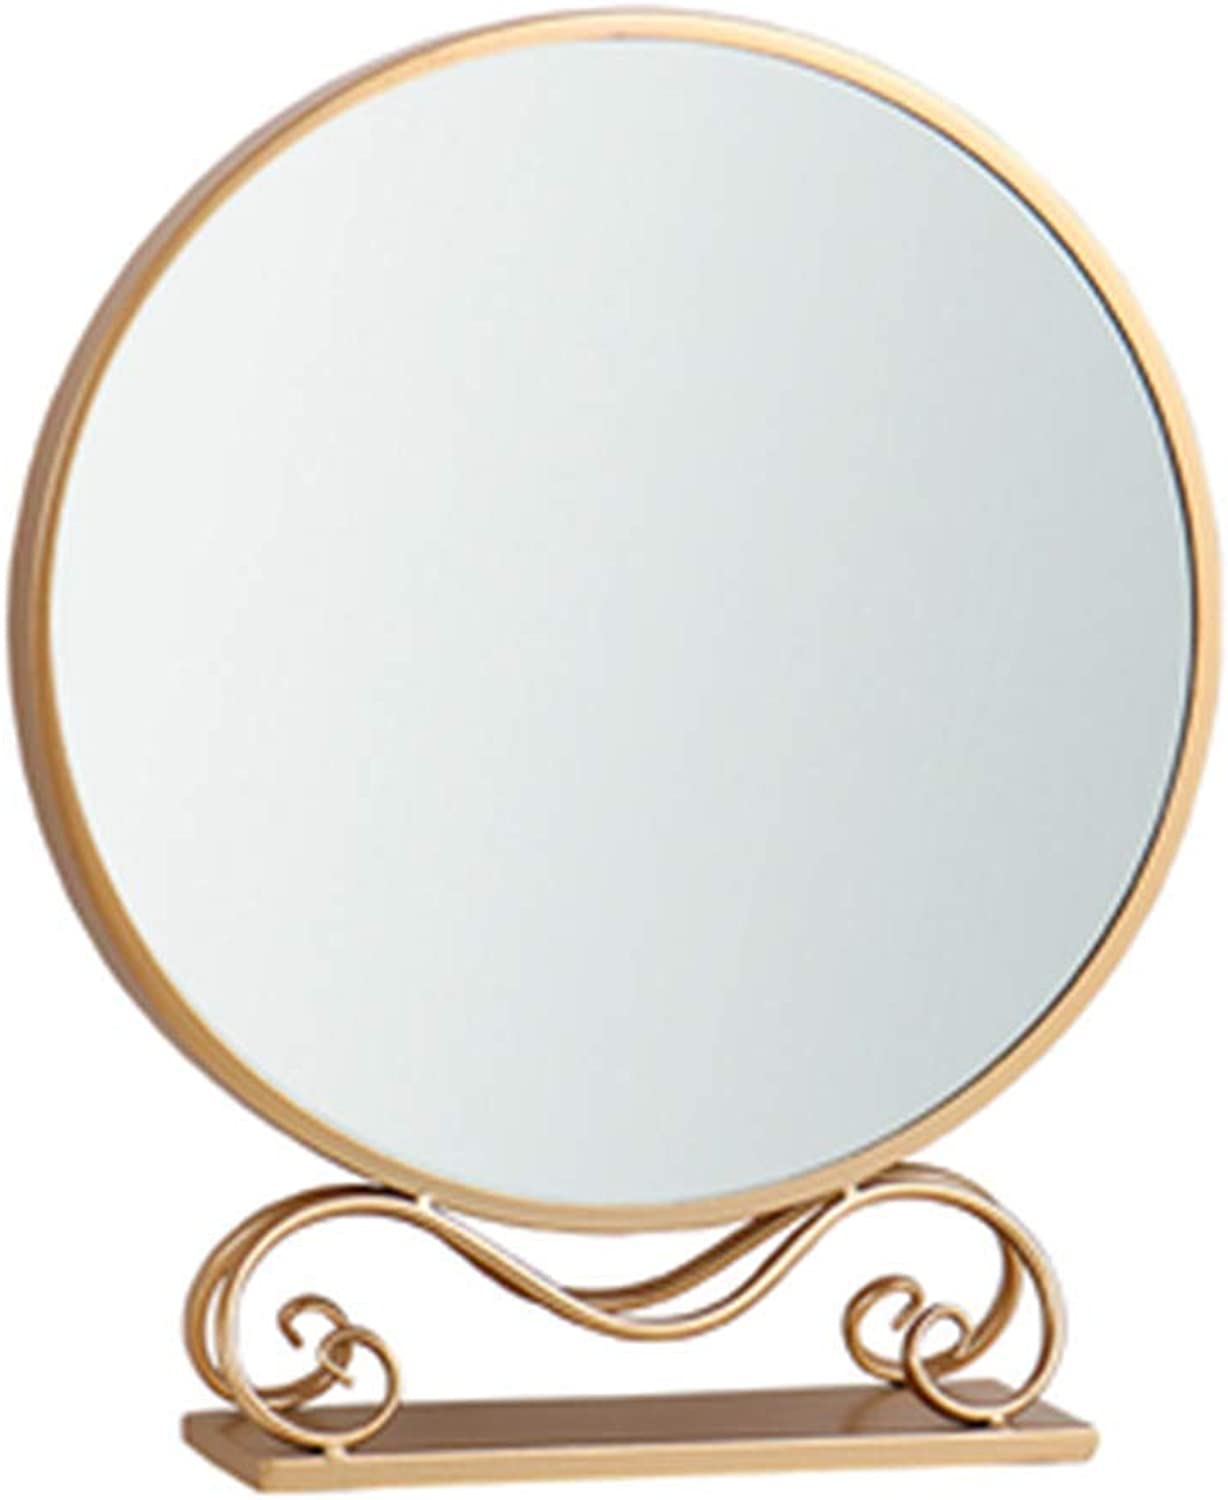 Nordic Makeup Mirror, Desktop Home Desktop Mirror, Wrought Iron Wall Mirror, Net Red Ins, Round Dresser Mirror, Clear Mirror, Smooth Paint, No Paint, No Fade,gold,59  30cm